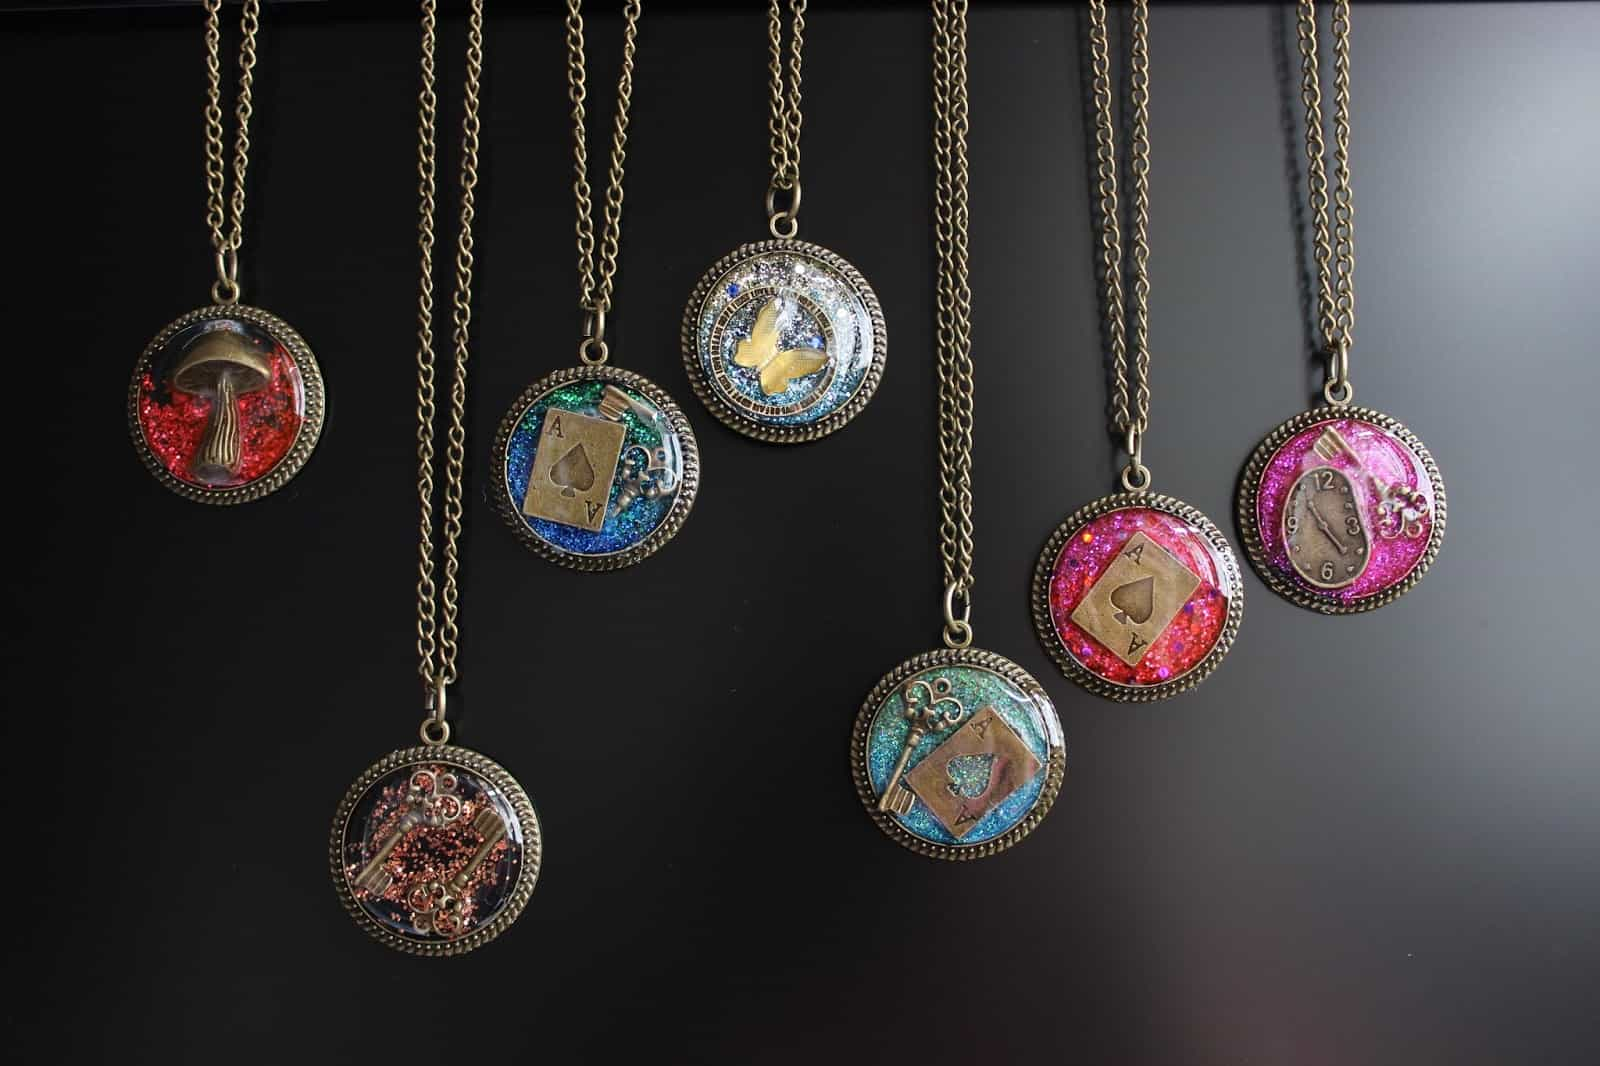 15 diy resin jewelry projects worthy of gifting diy glitter resin jewelry solutioingenieria Gallery